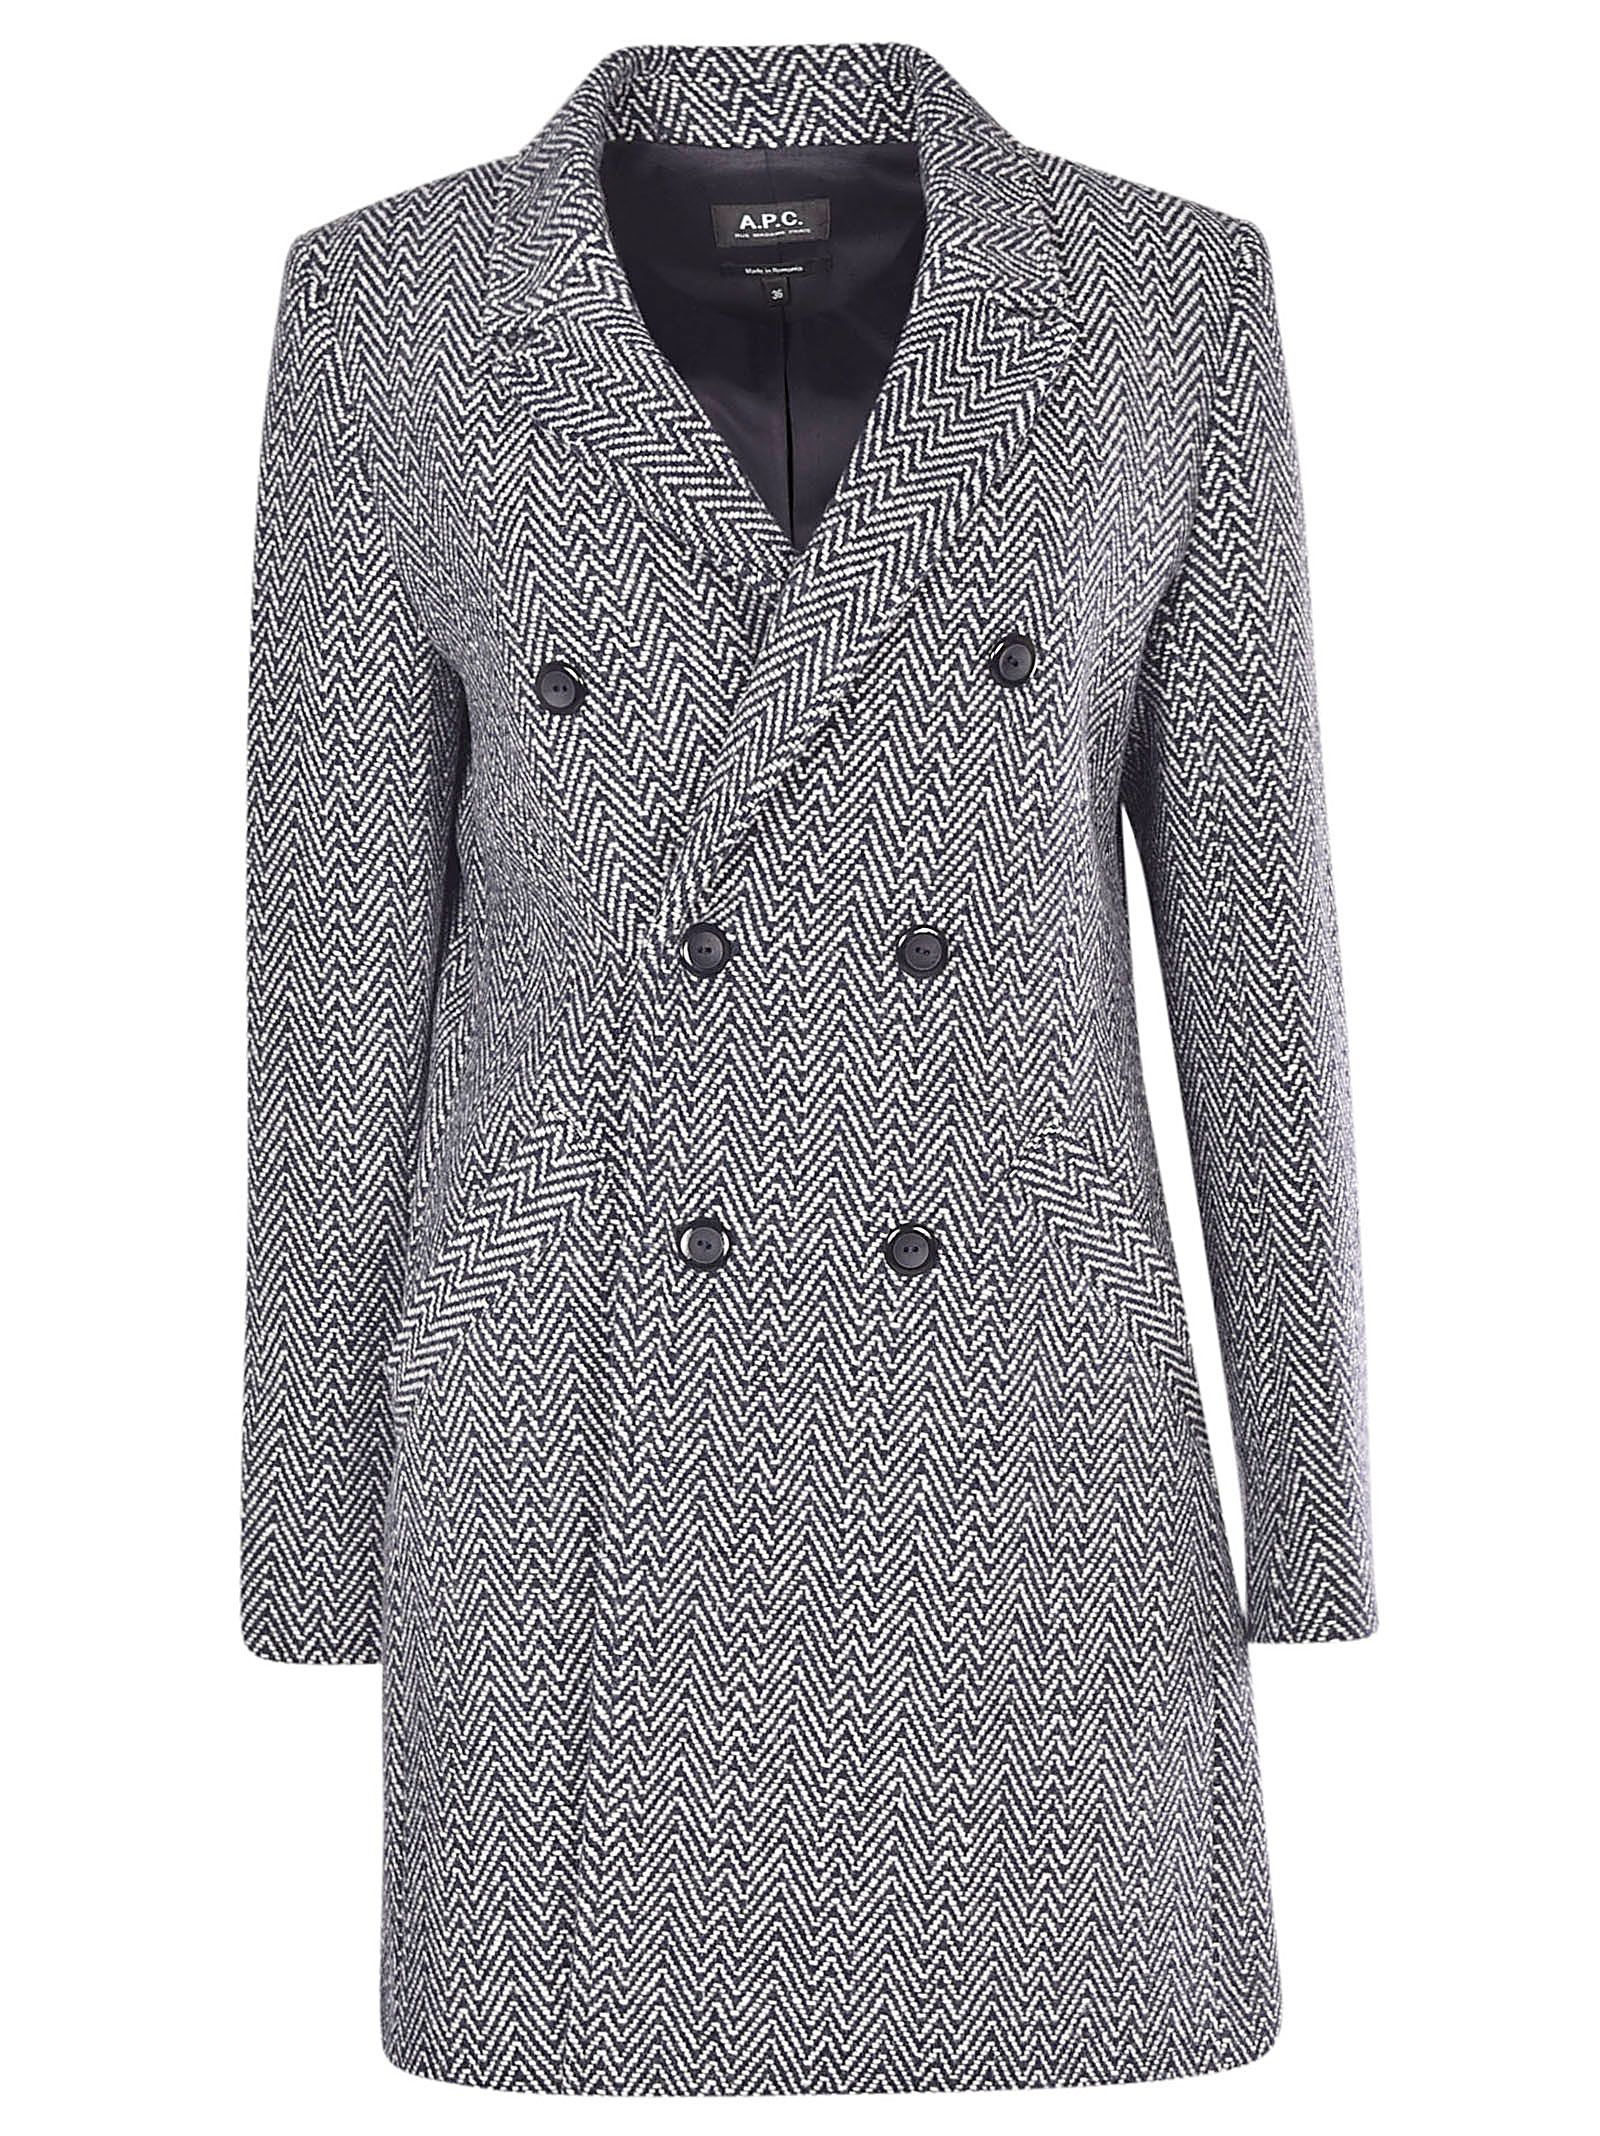 A.P.C. A.P.C. PATTERNED COAT